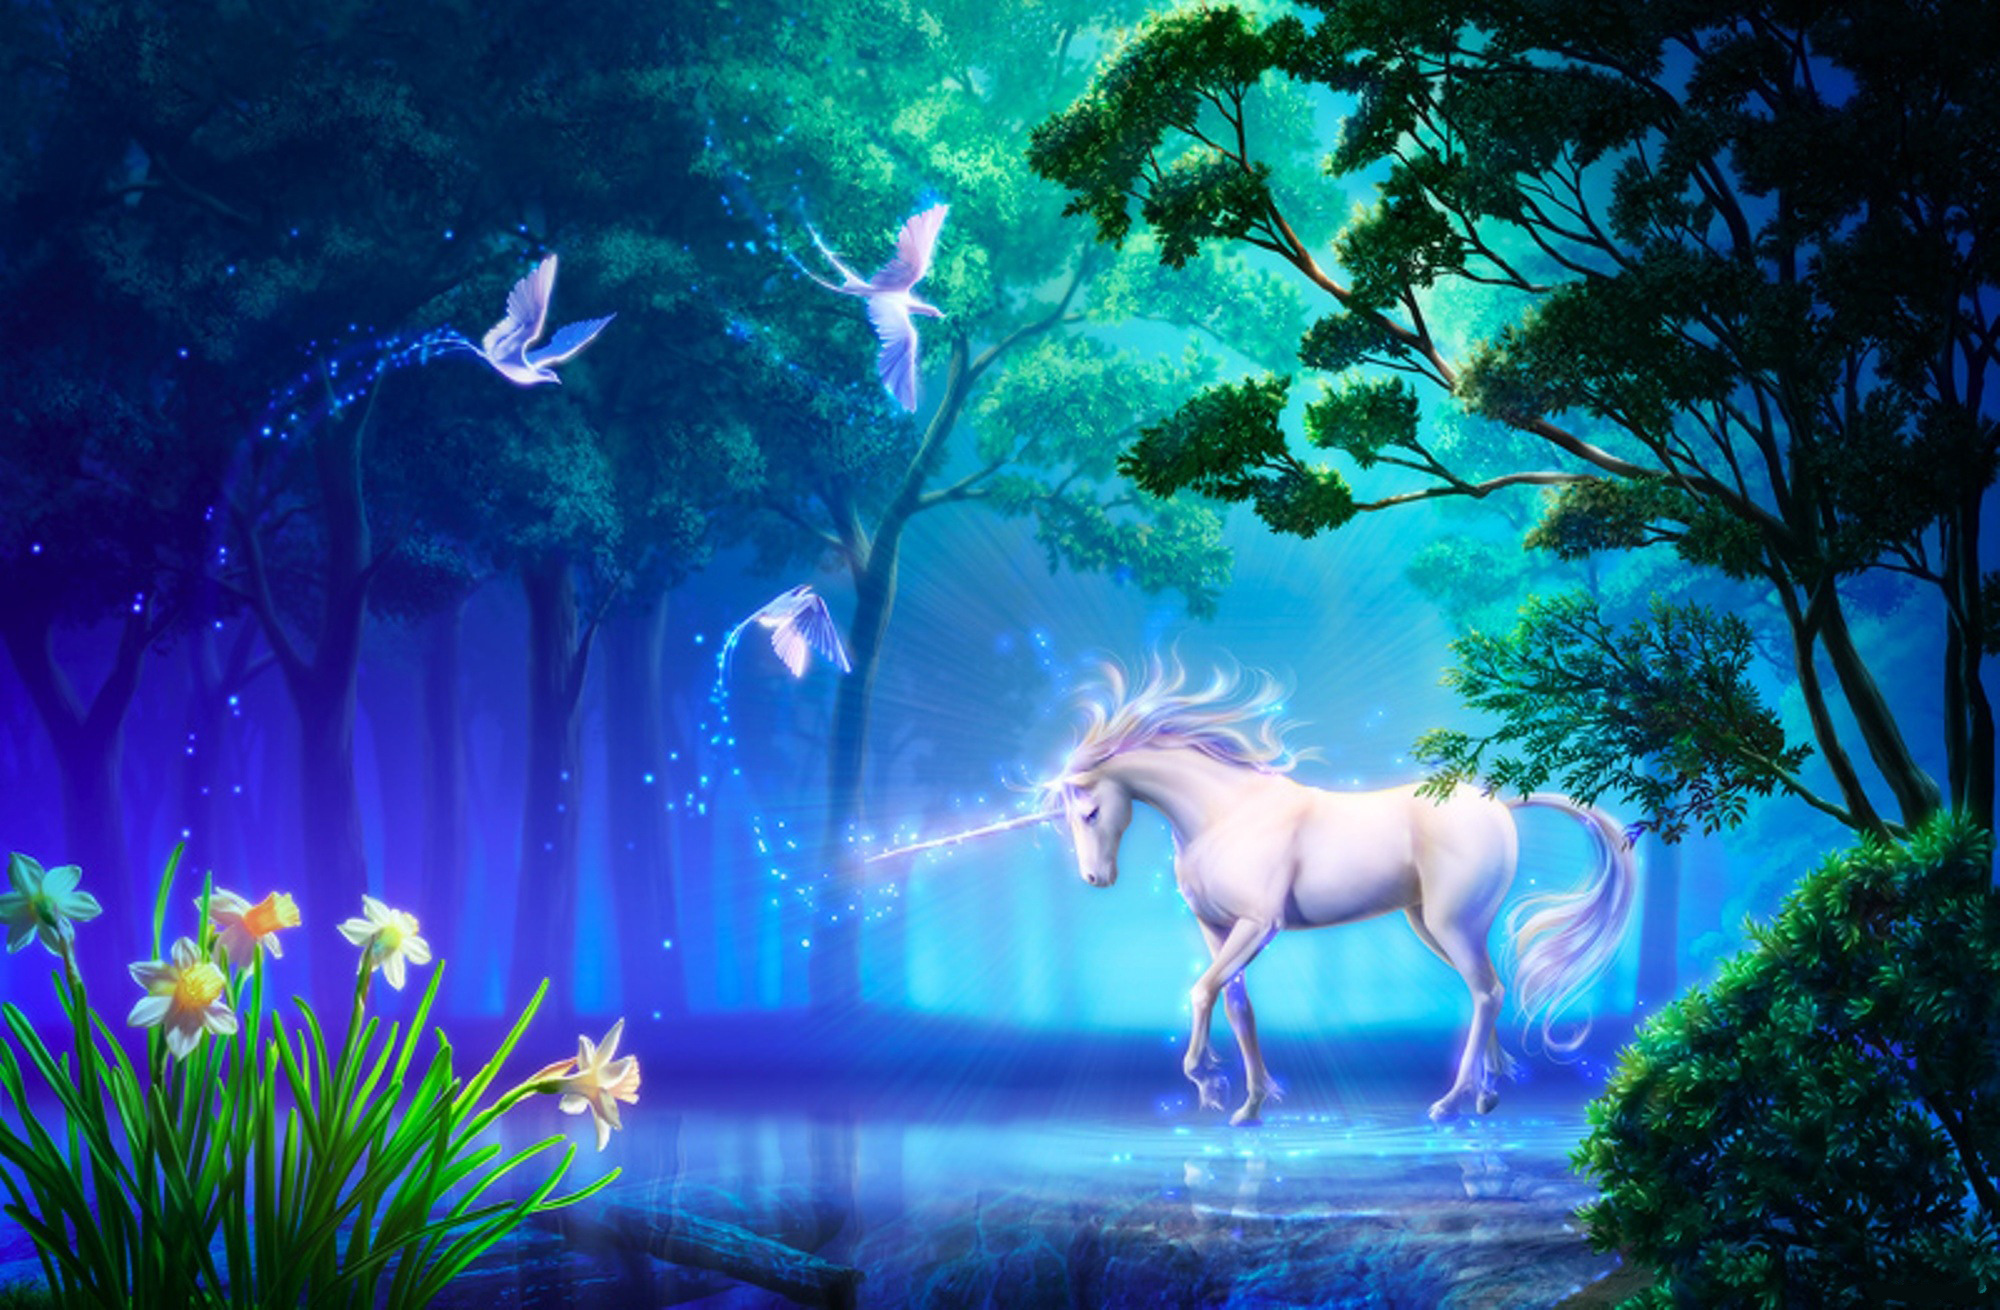 57 licorne fonds d 39 cran hd arri re plans wallpaper abyss page 2 - Wallpaper abyss categories ...